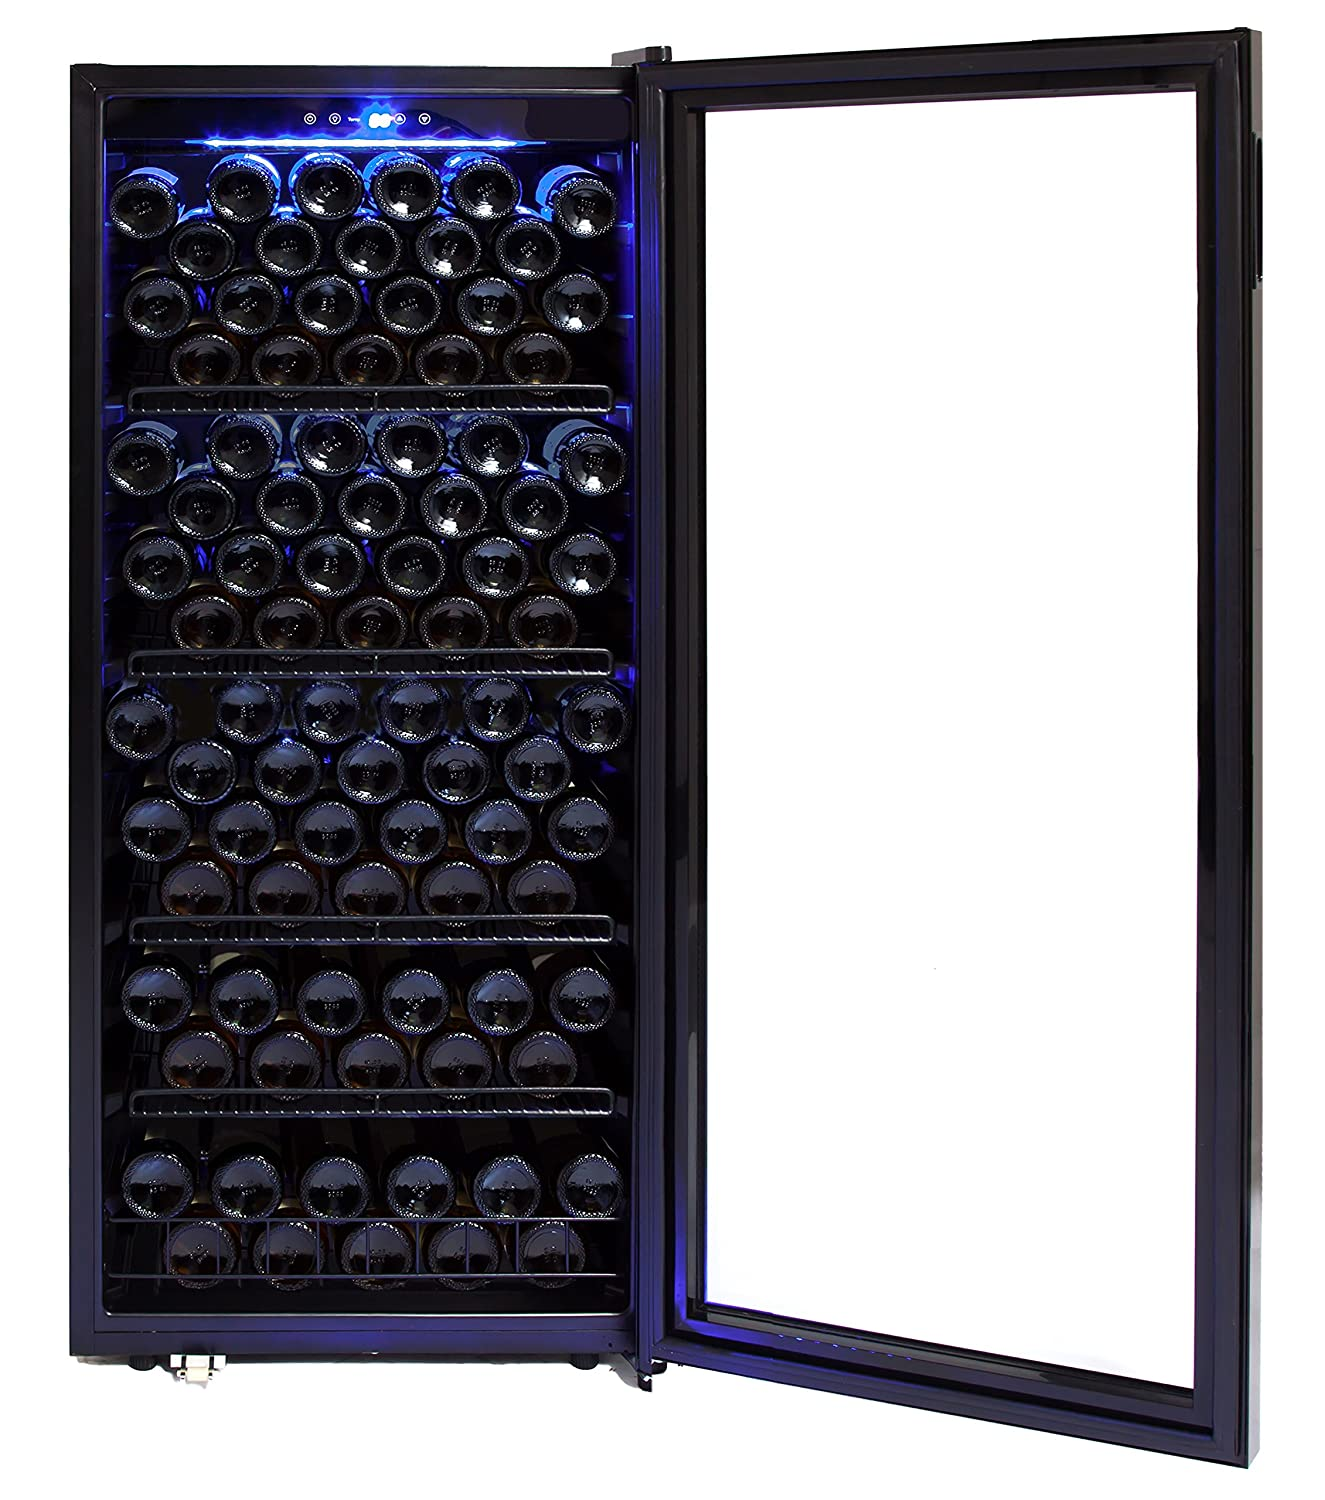 Amazon.com: Whynter FWC-1201BB 120 Bottle Freestanding Wine ...